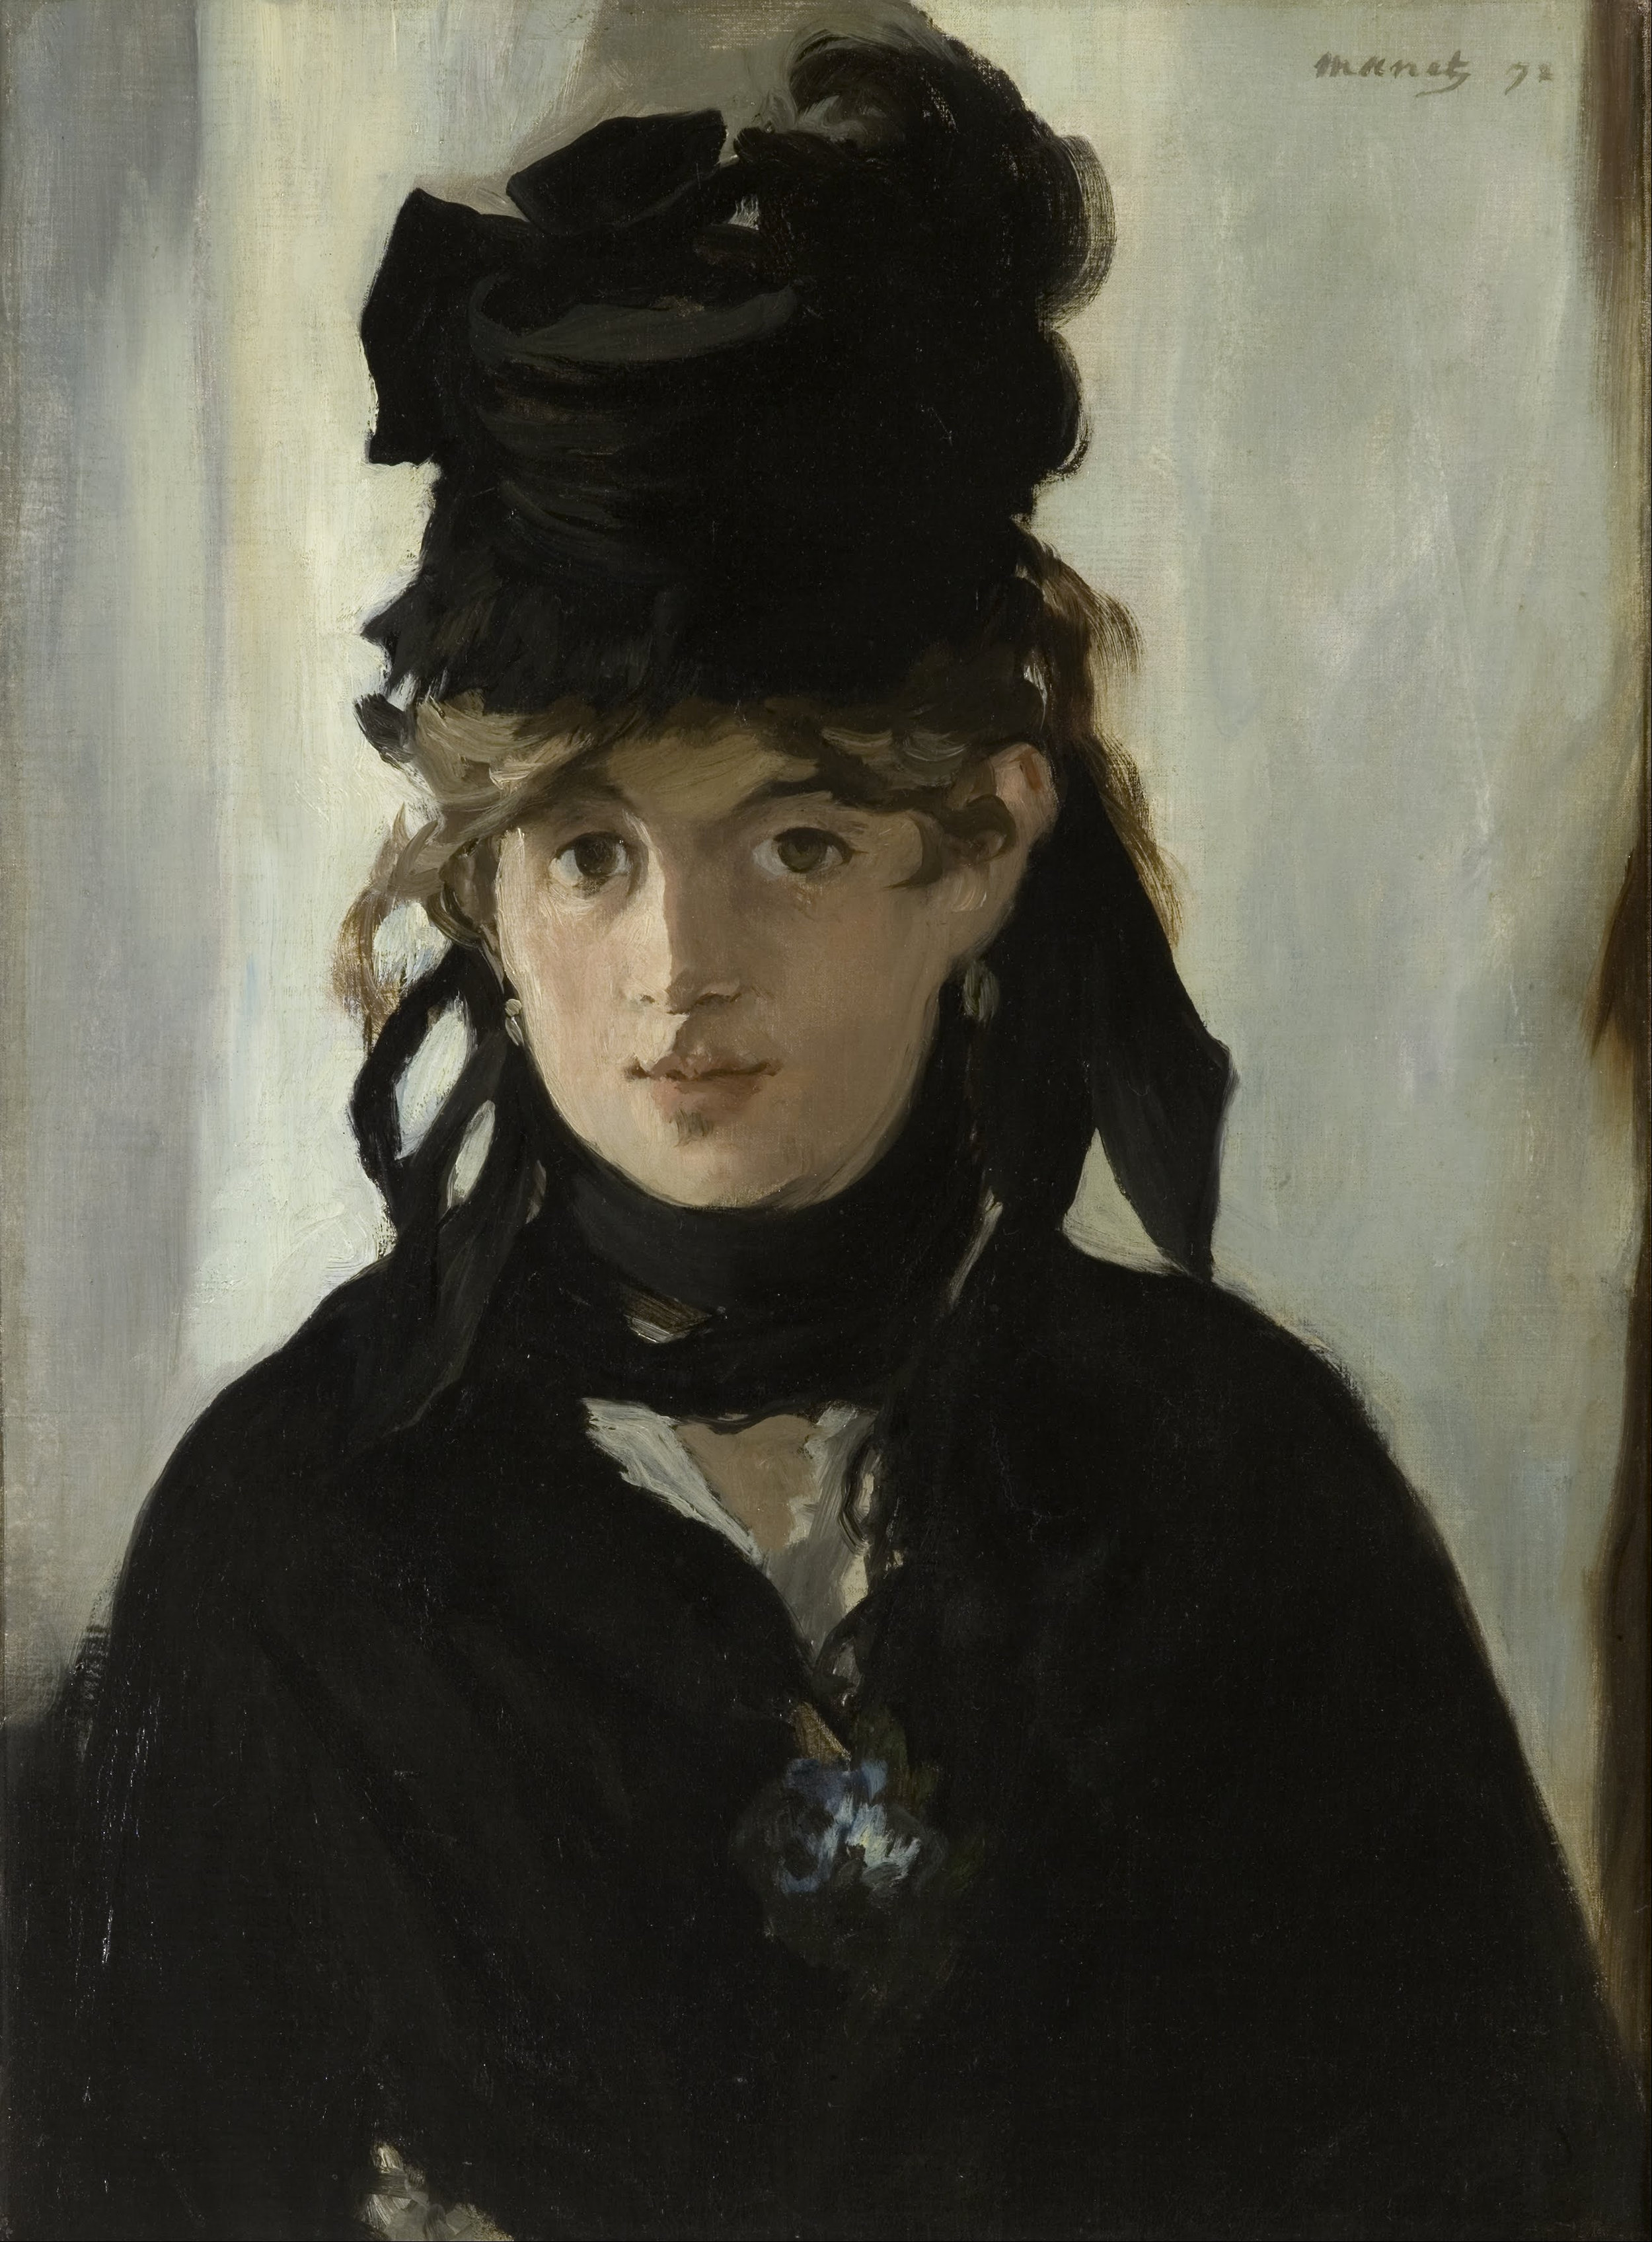 Édouard Manet, Berthe Morisot with a Bouquet of Violets (in mourning for her father), 1872